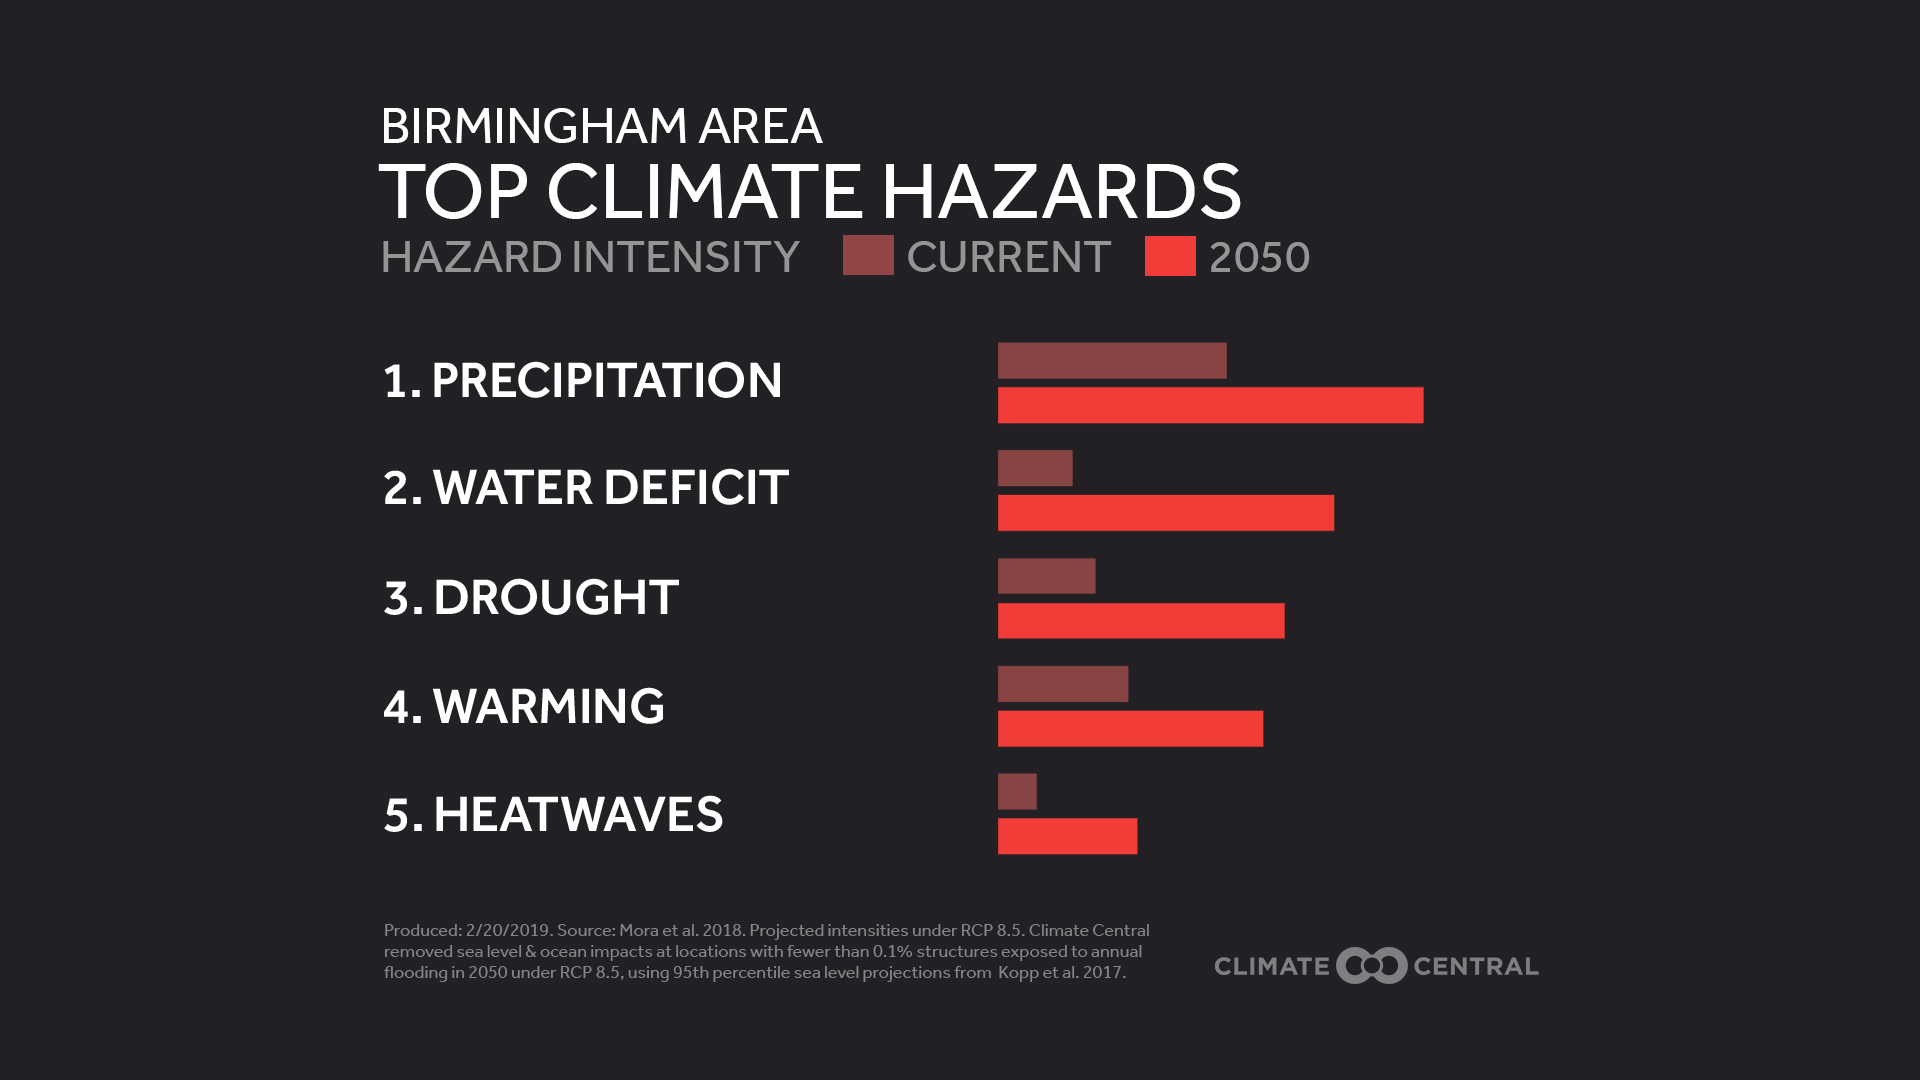 your area's top 5 climate hazards